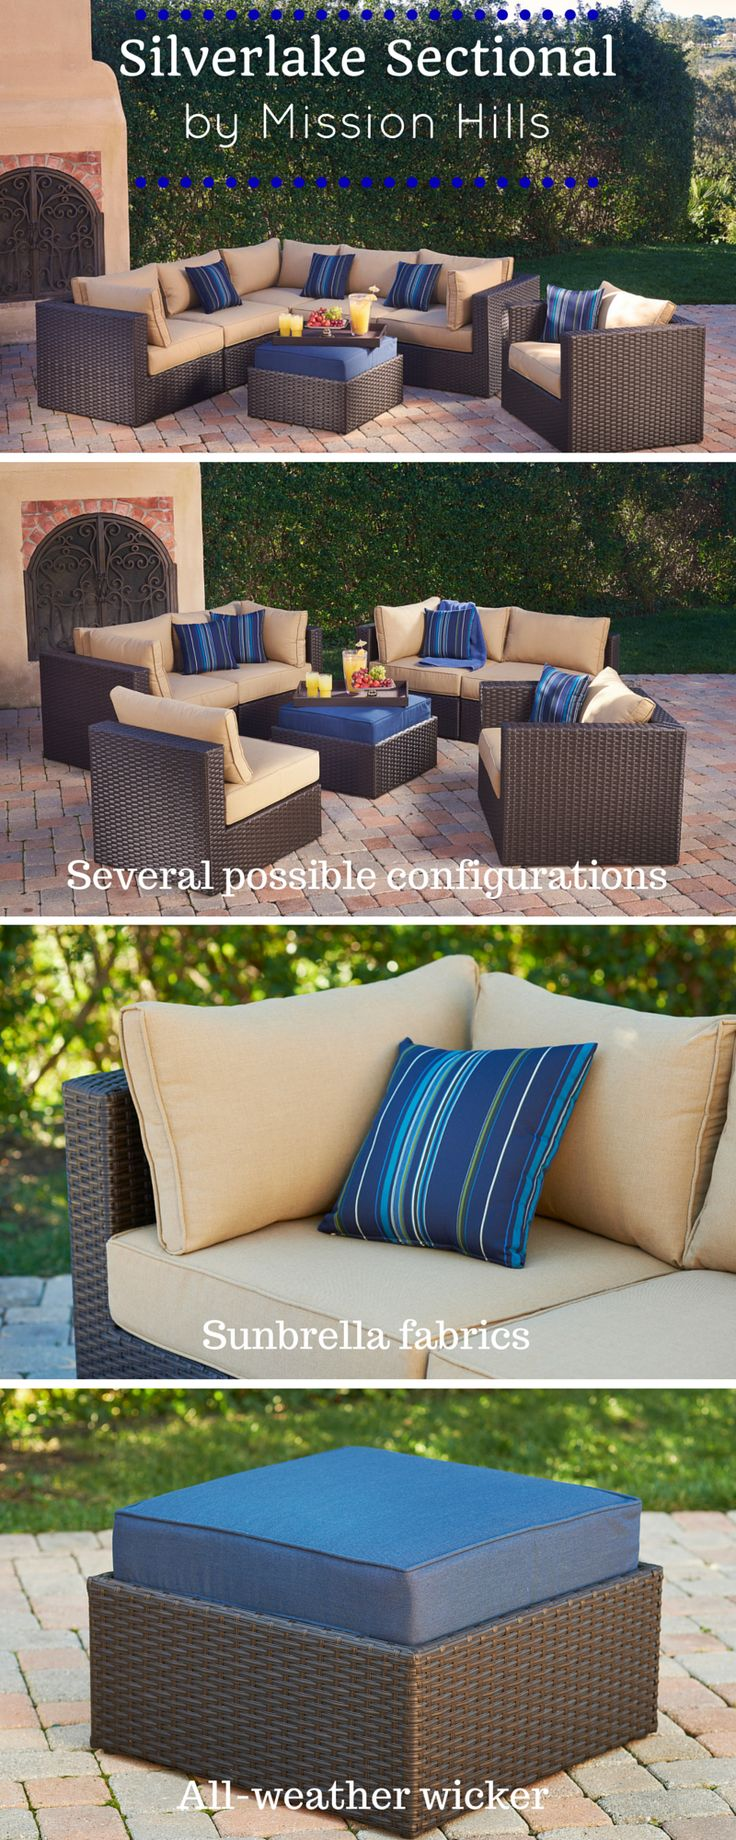 The Silverlake Sectional Set   Beautiful Indigo Colors, All Weather Wicker,  And Design Versatility Make This The Perfect Patio Furniture!